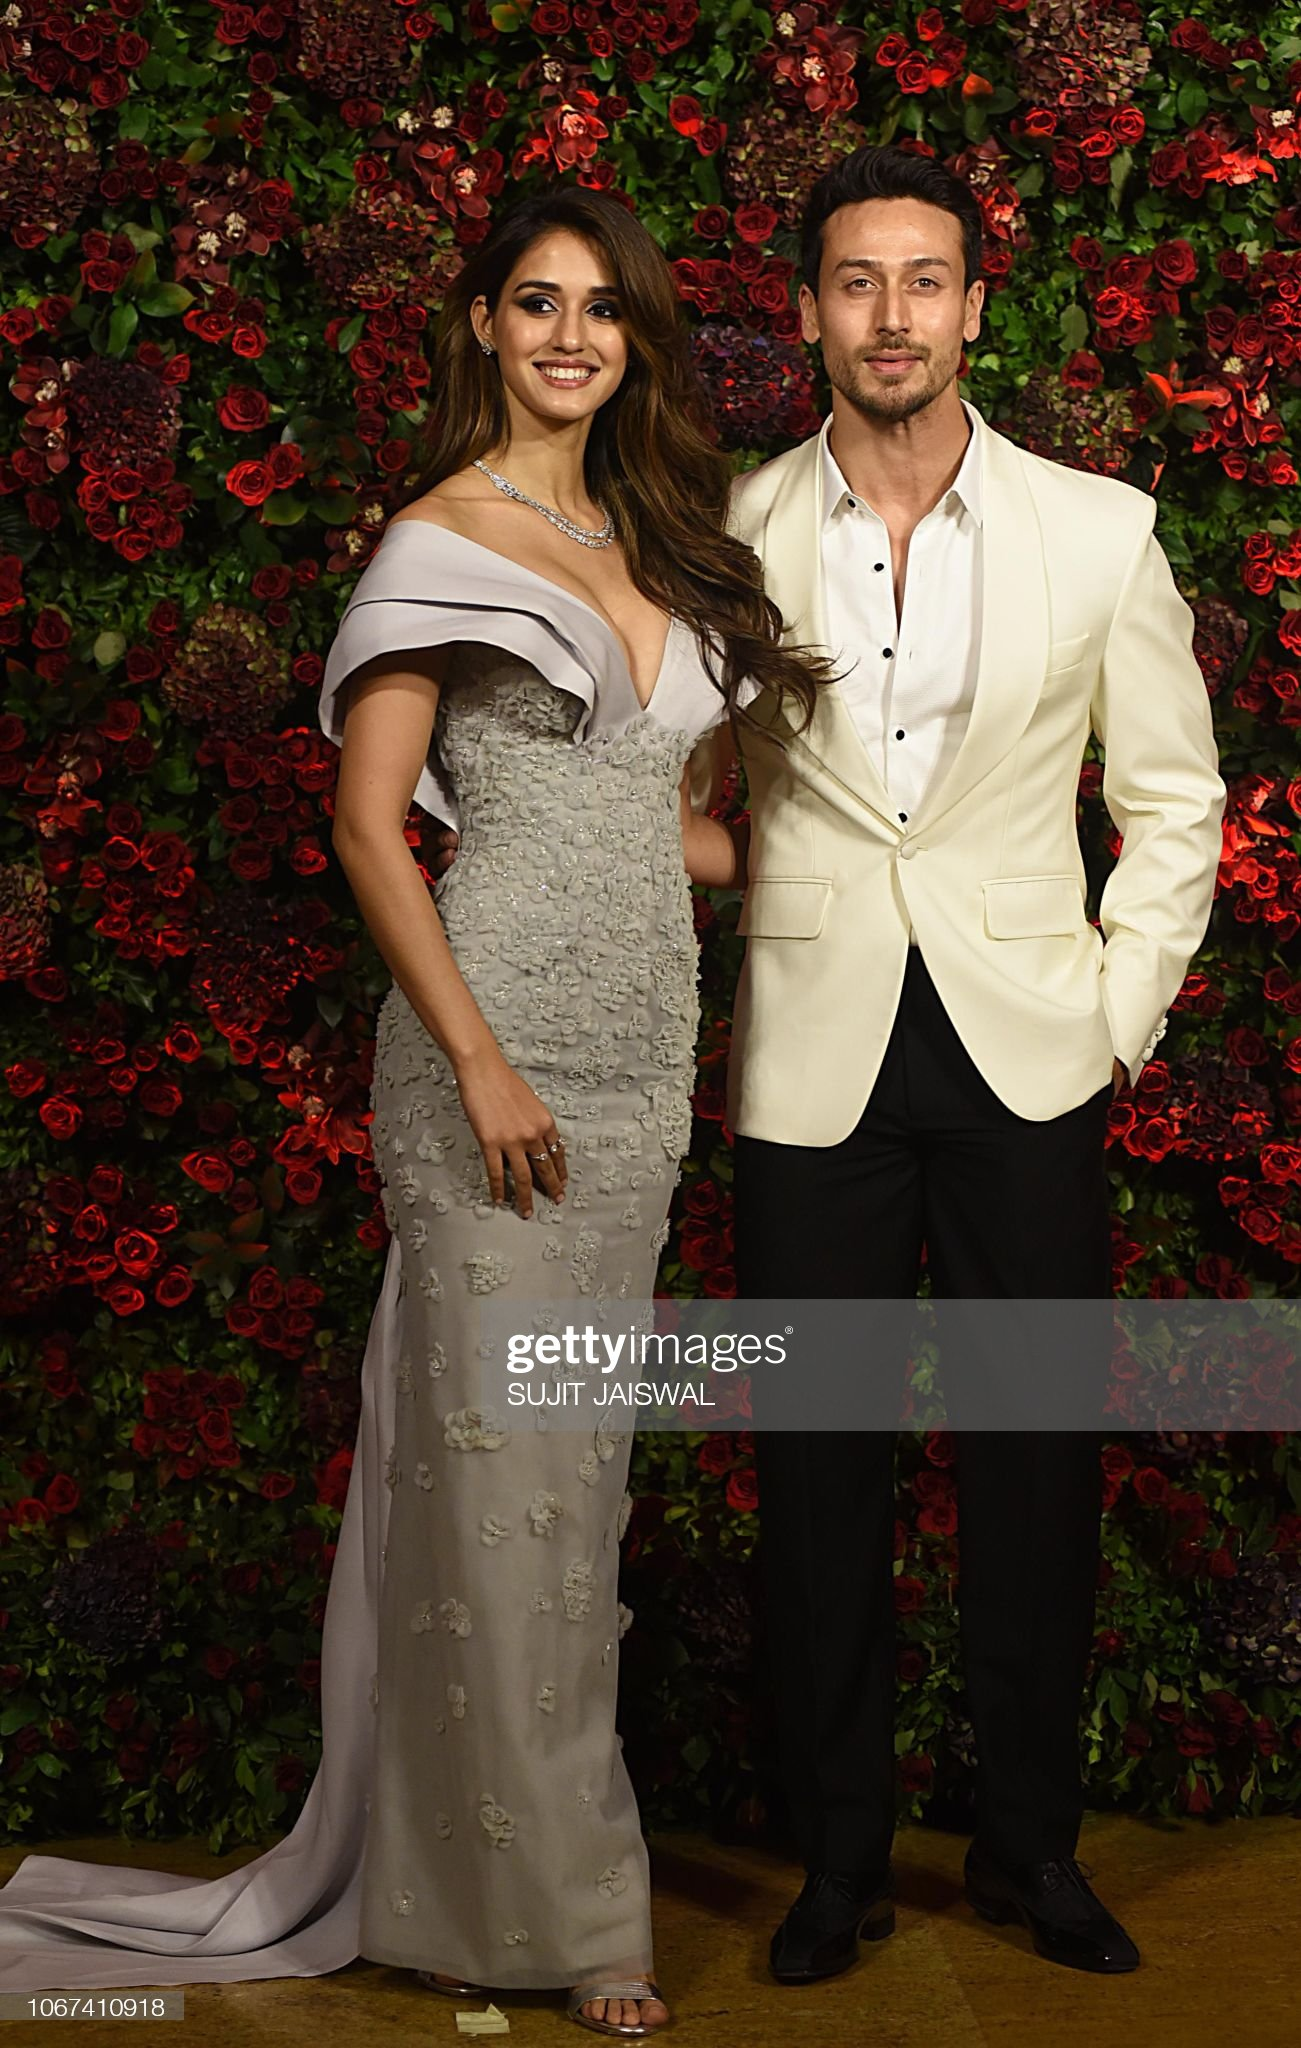 indian-bollywood-actors-disha-patani-and-tiger-shroff-pose-for-a-picture-id1067410918